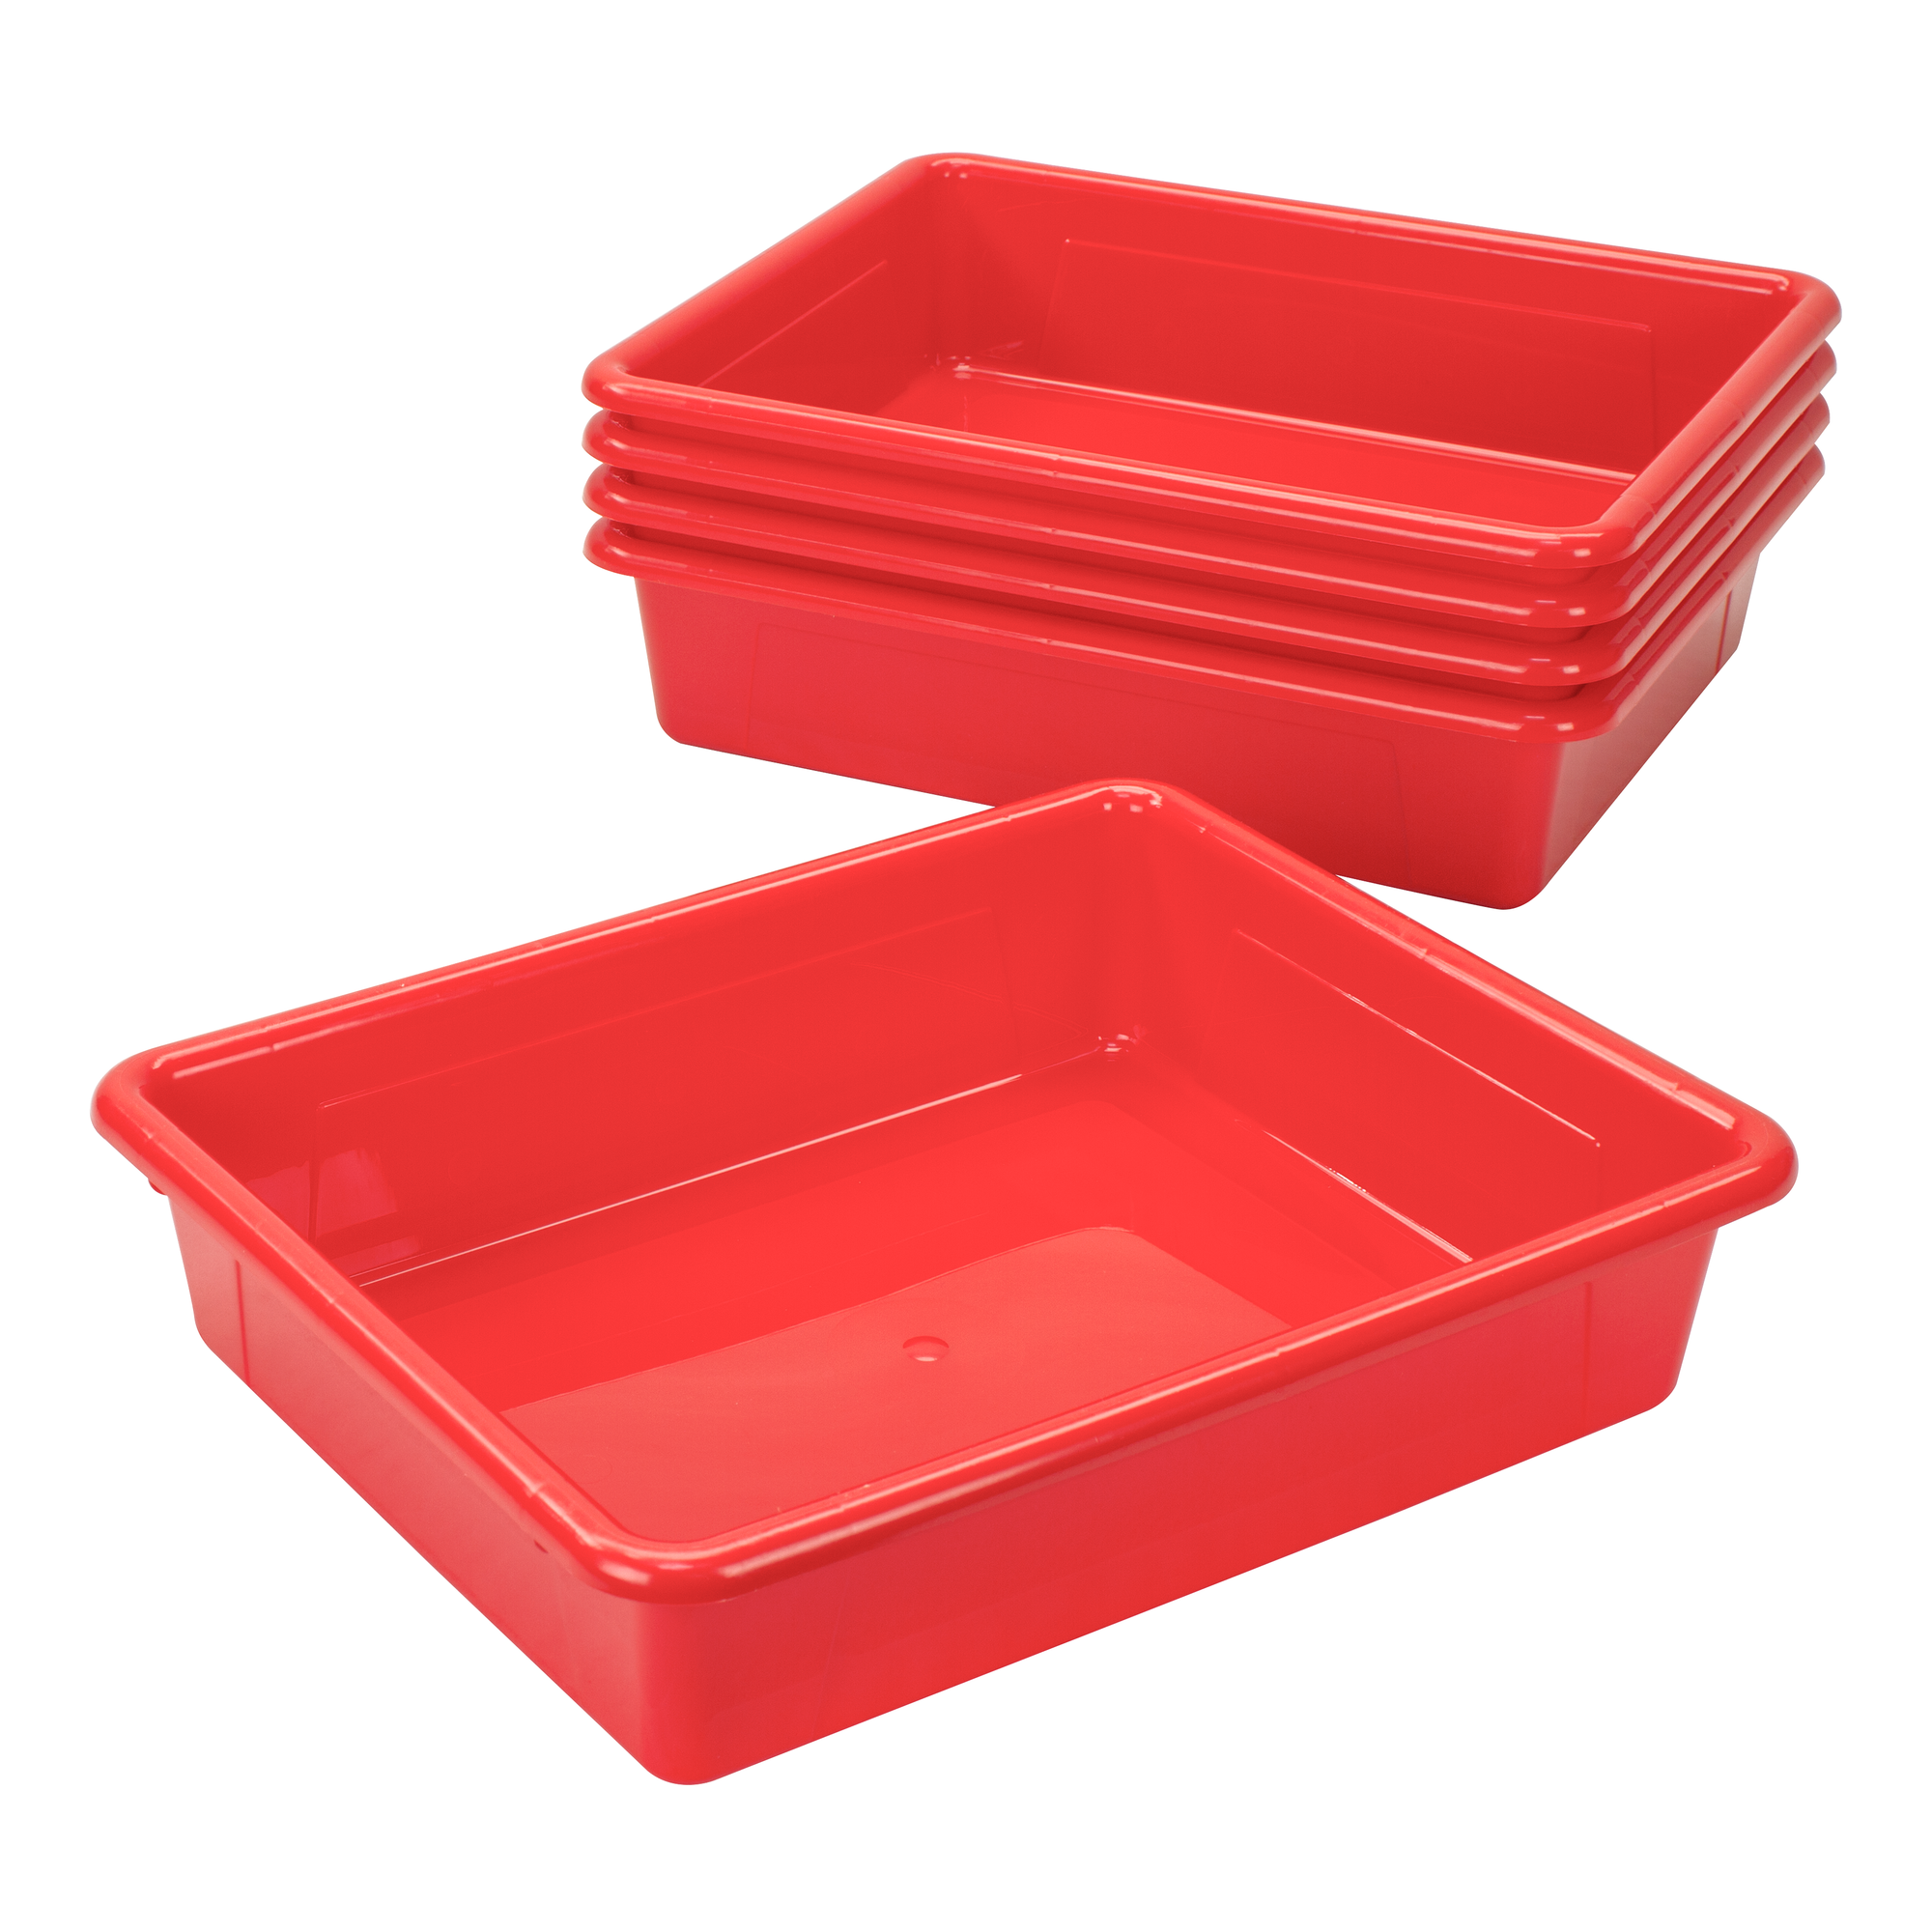 Storex Storage Tray, Letter Size, 10 x 13 x 3 Inches, Red, 5-Pack